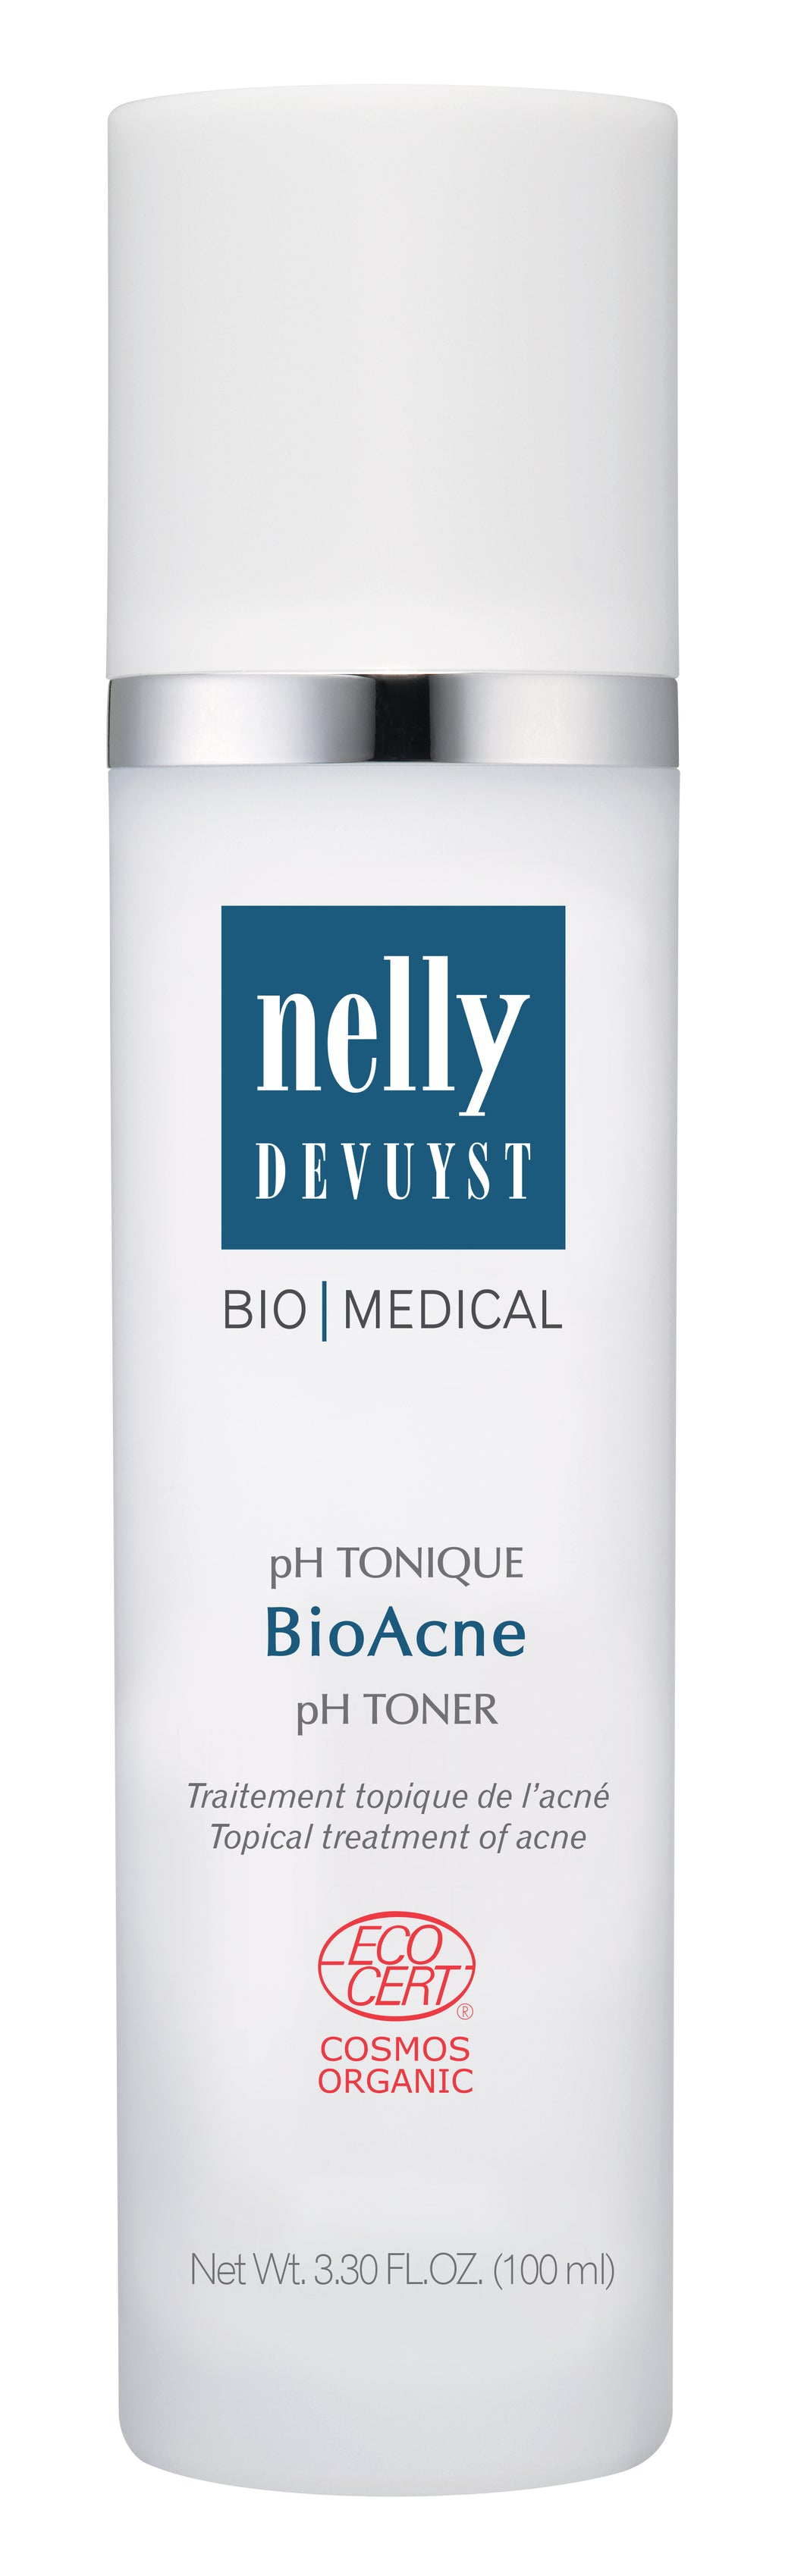 BioAcne pH Toner